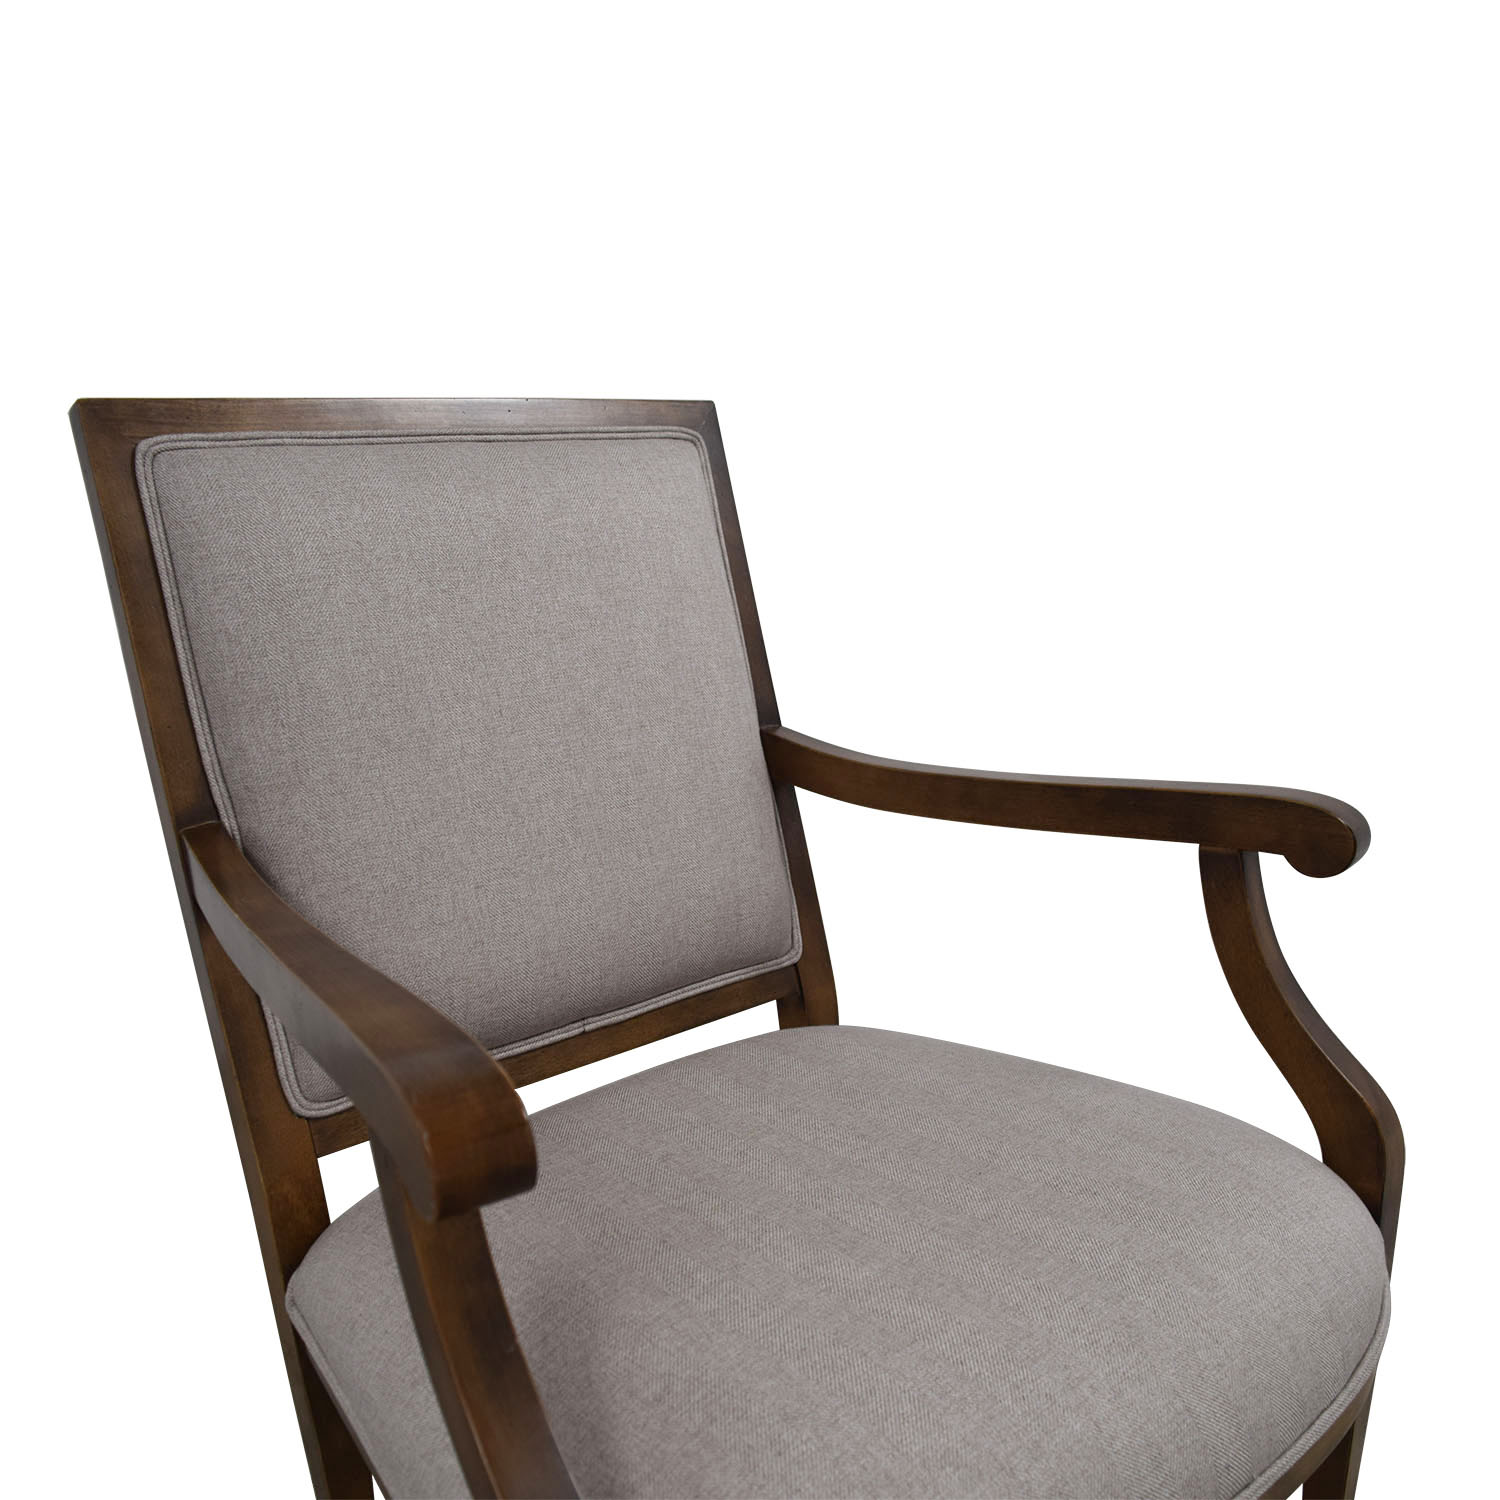 Restoration Hardware Restoration Hardware Grey Accent Chair discount